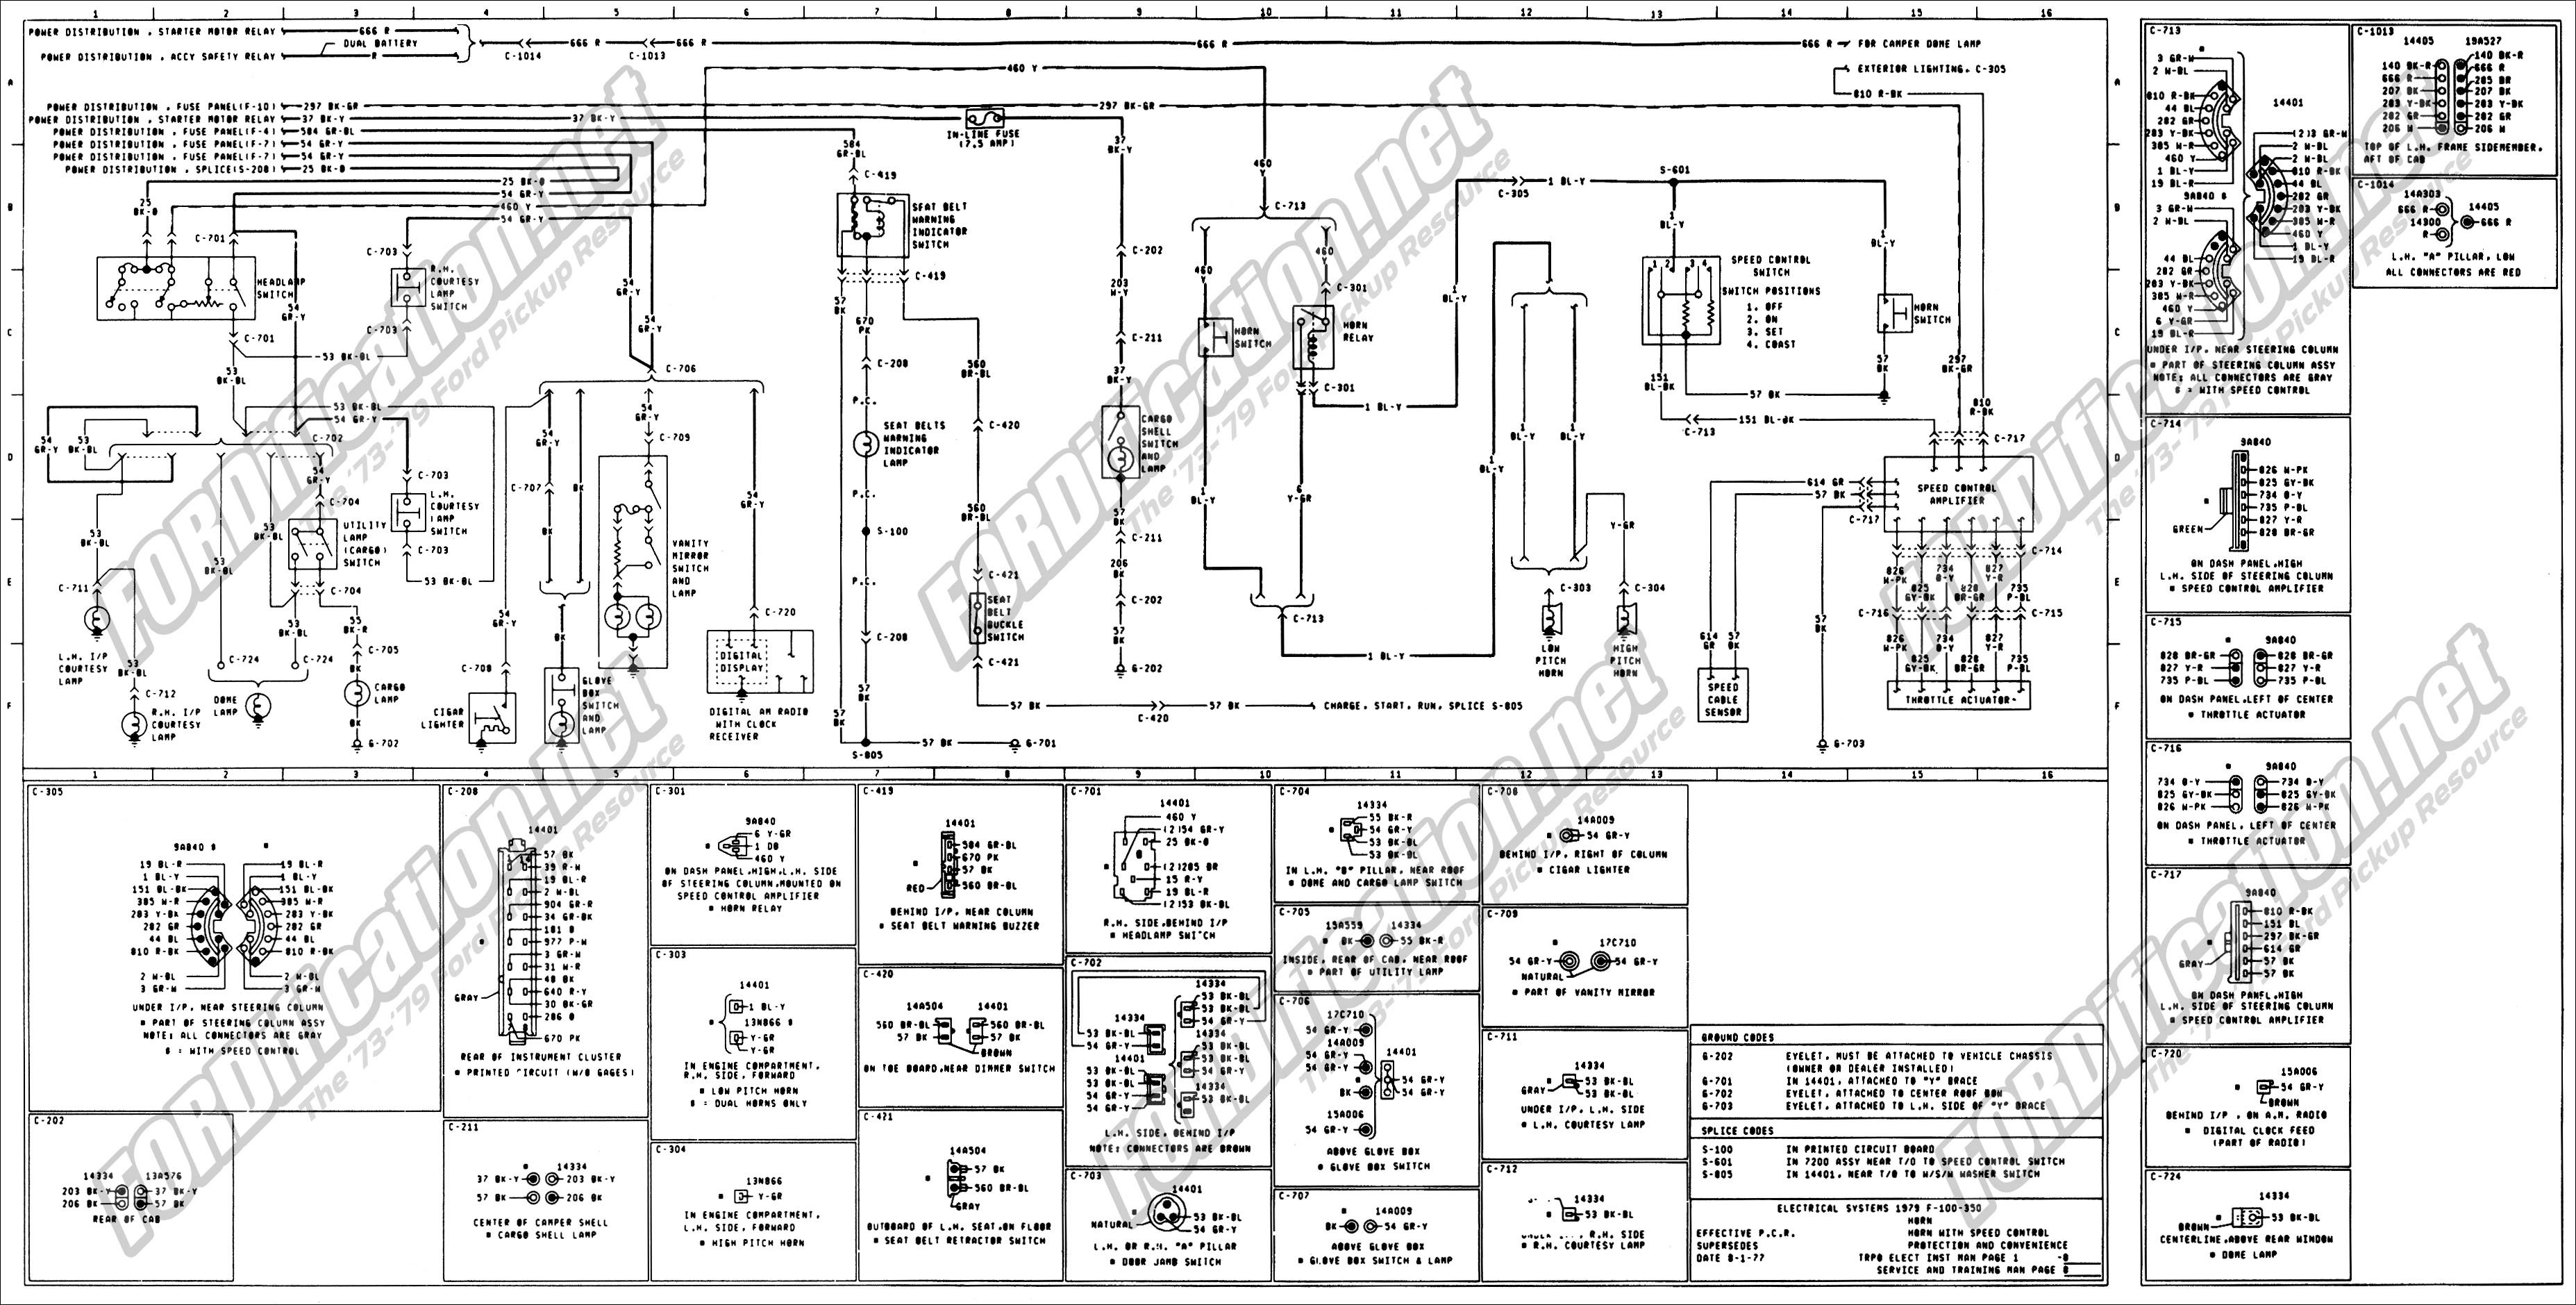 1979 ford Truck Wiring Diagram 1973 1979 ford Truck Wiring Diagrams & Schematics fordification Of 1979 ford Truck Wiring Diagram